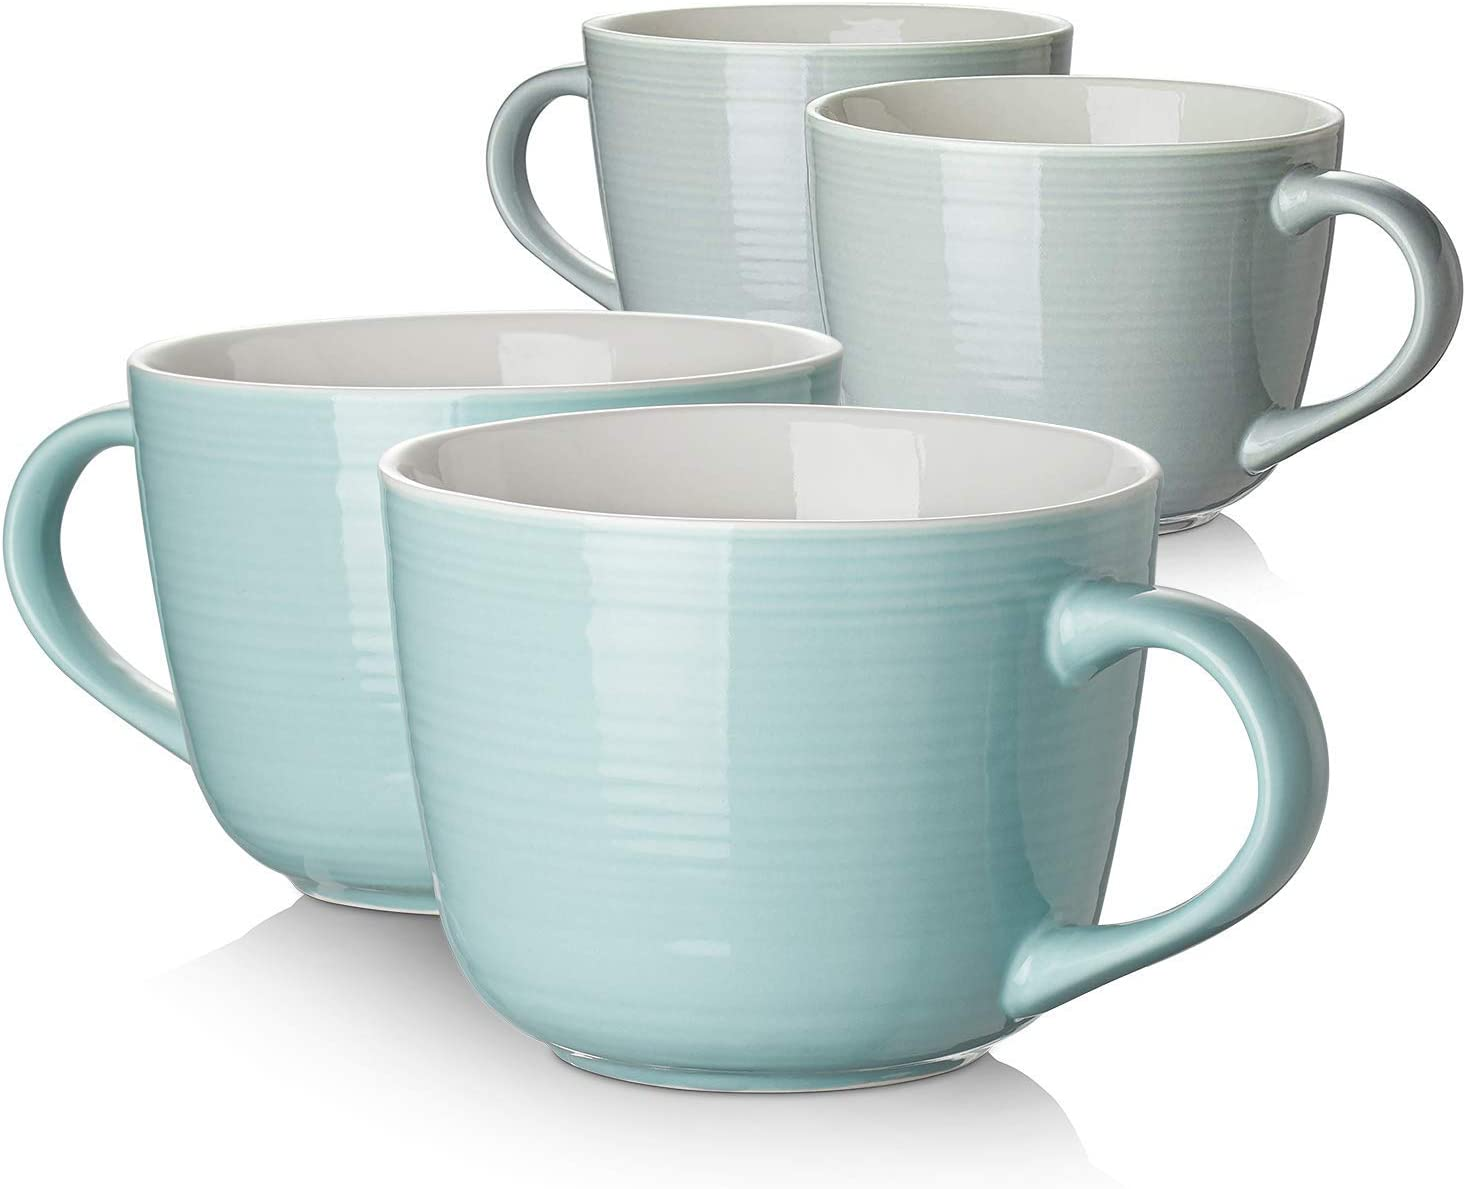 DOWAN Porcelain Large Coffee Mug Set of 2-17 Ounces Microwave Safe and Oven Safe Wide Mug for Cappuccino, Latte Coffee, Soup, Tea, Cereal, Ice Cream, Gray